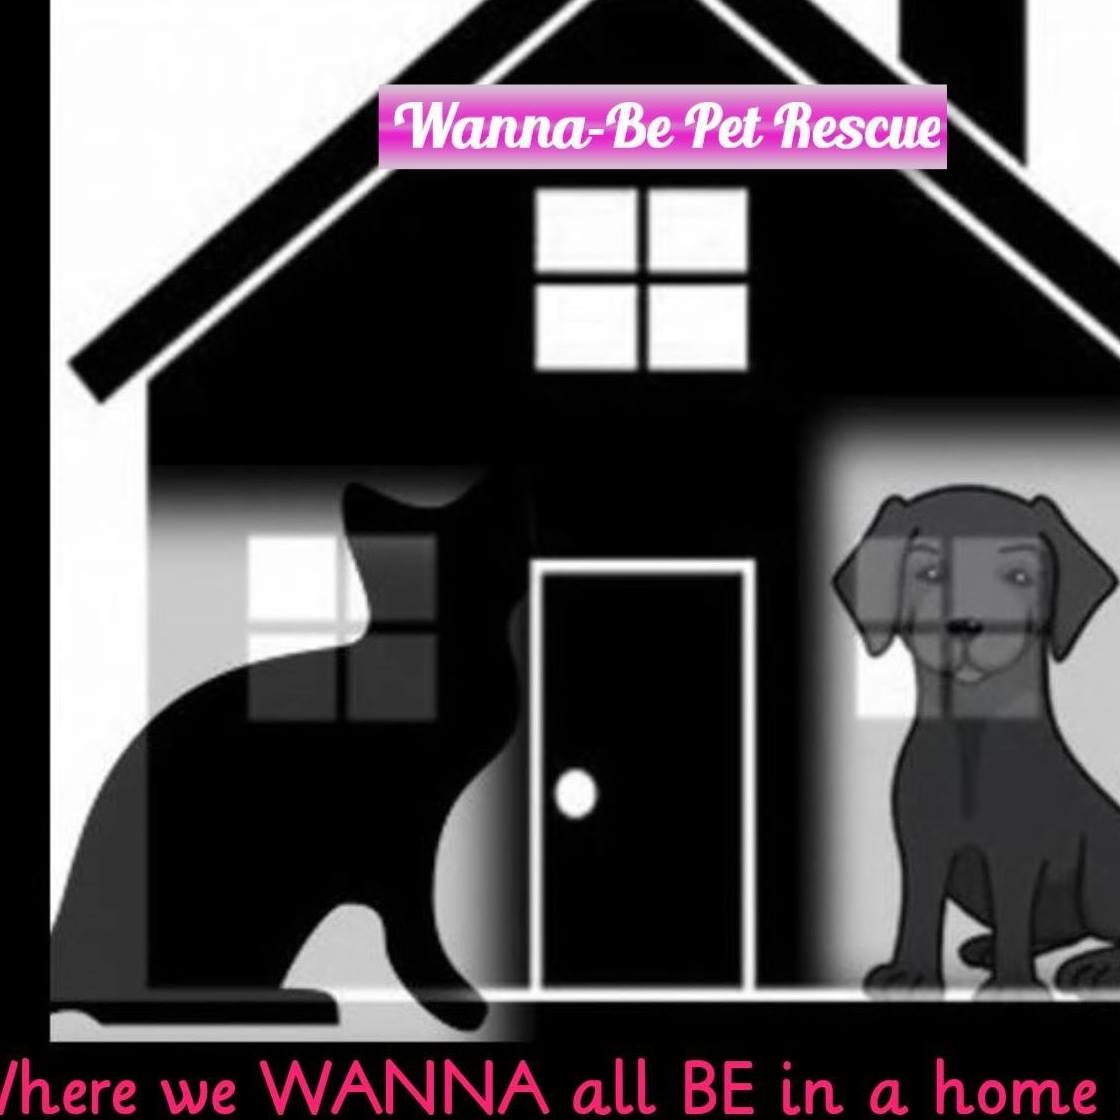 Wanna-Be Pet Rescue